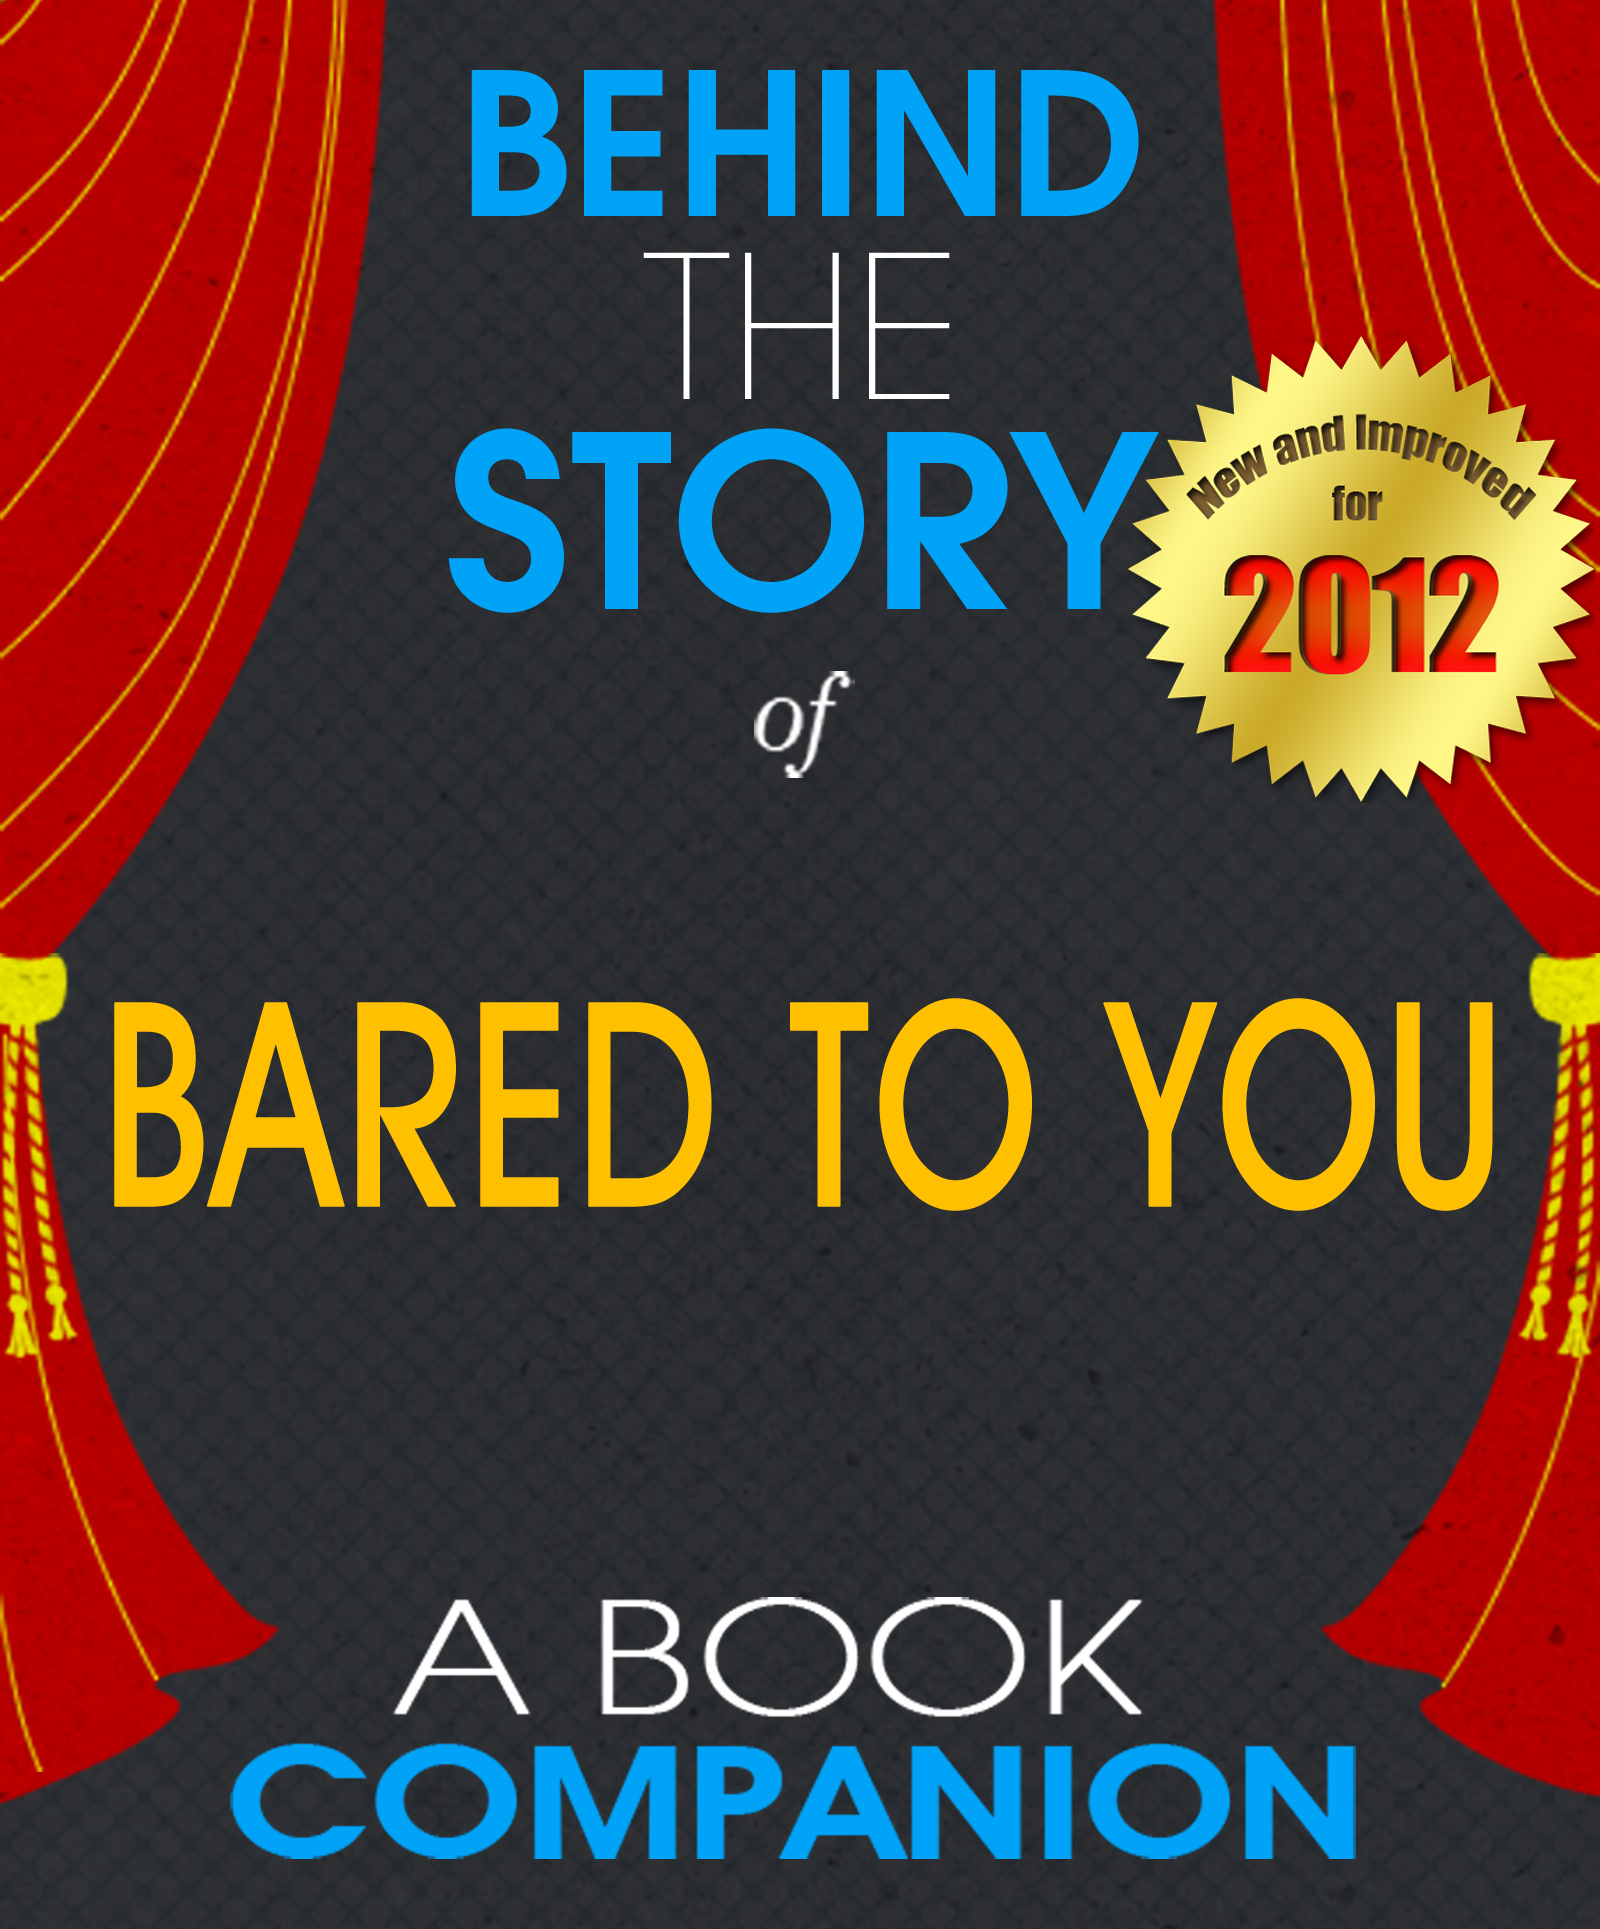 Bared To You: Behind the Story